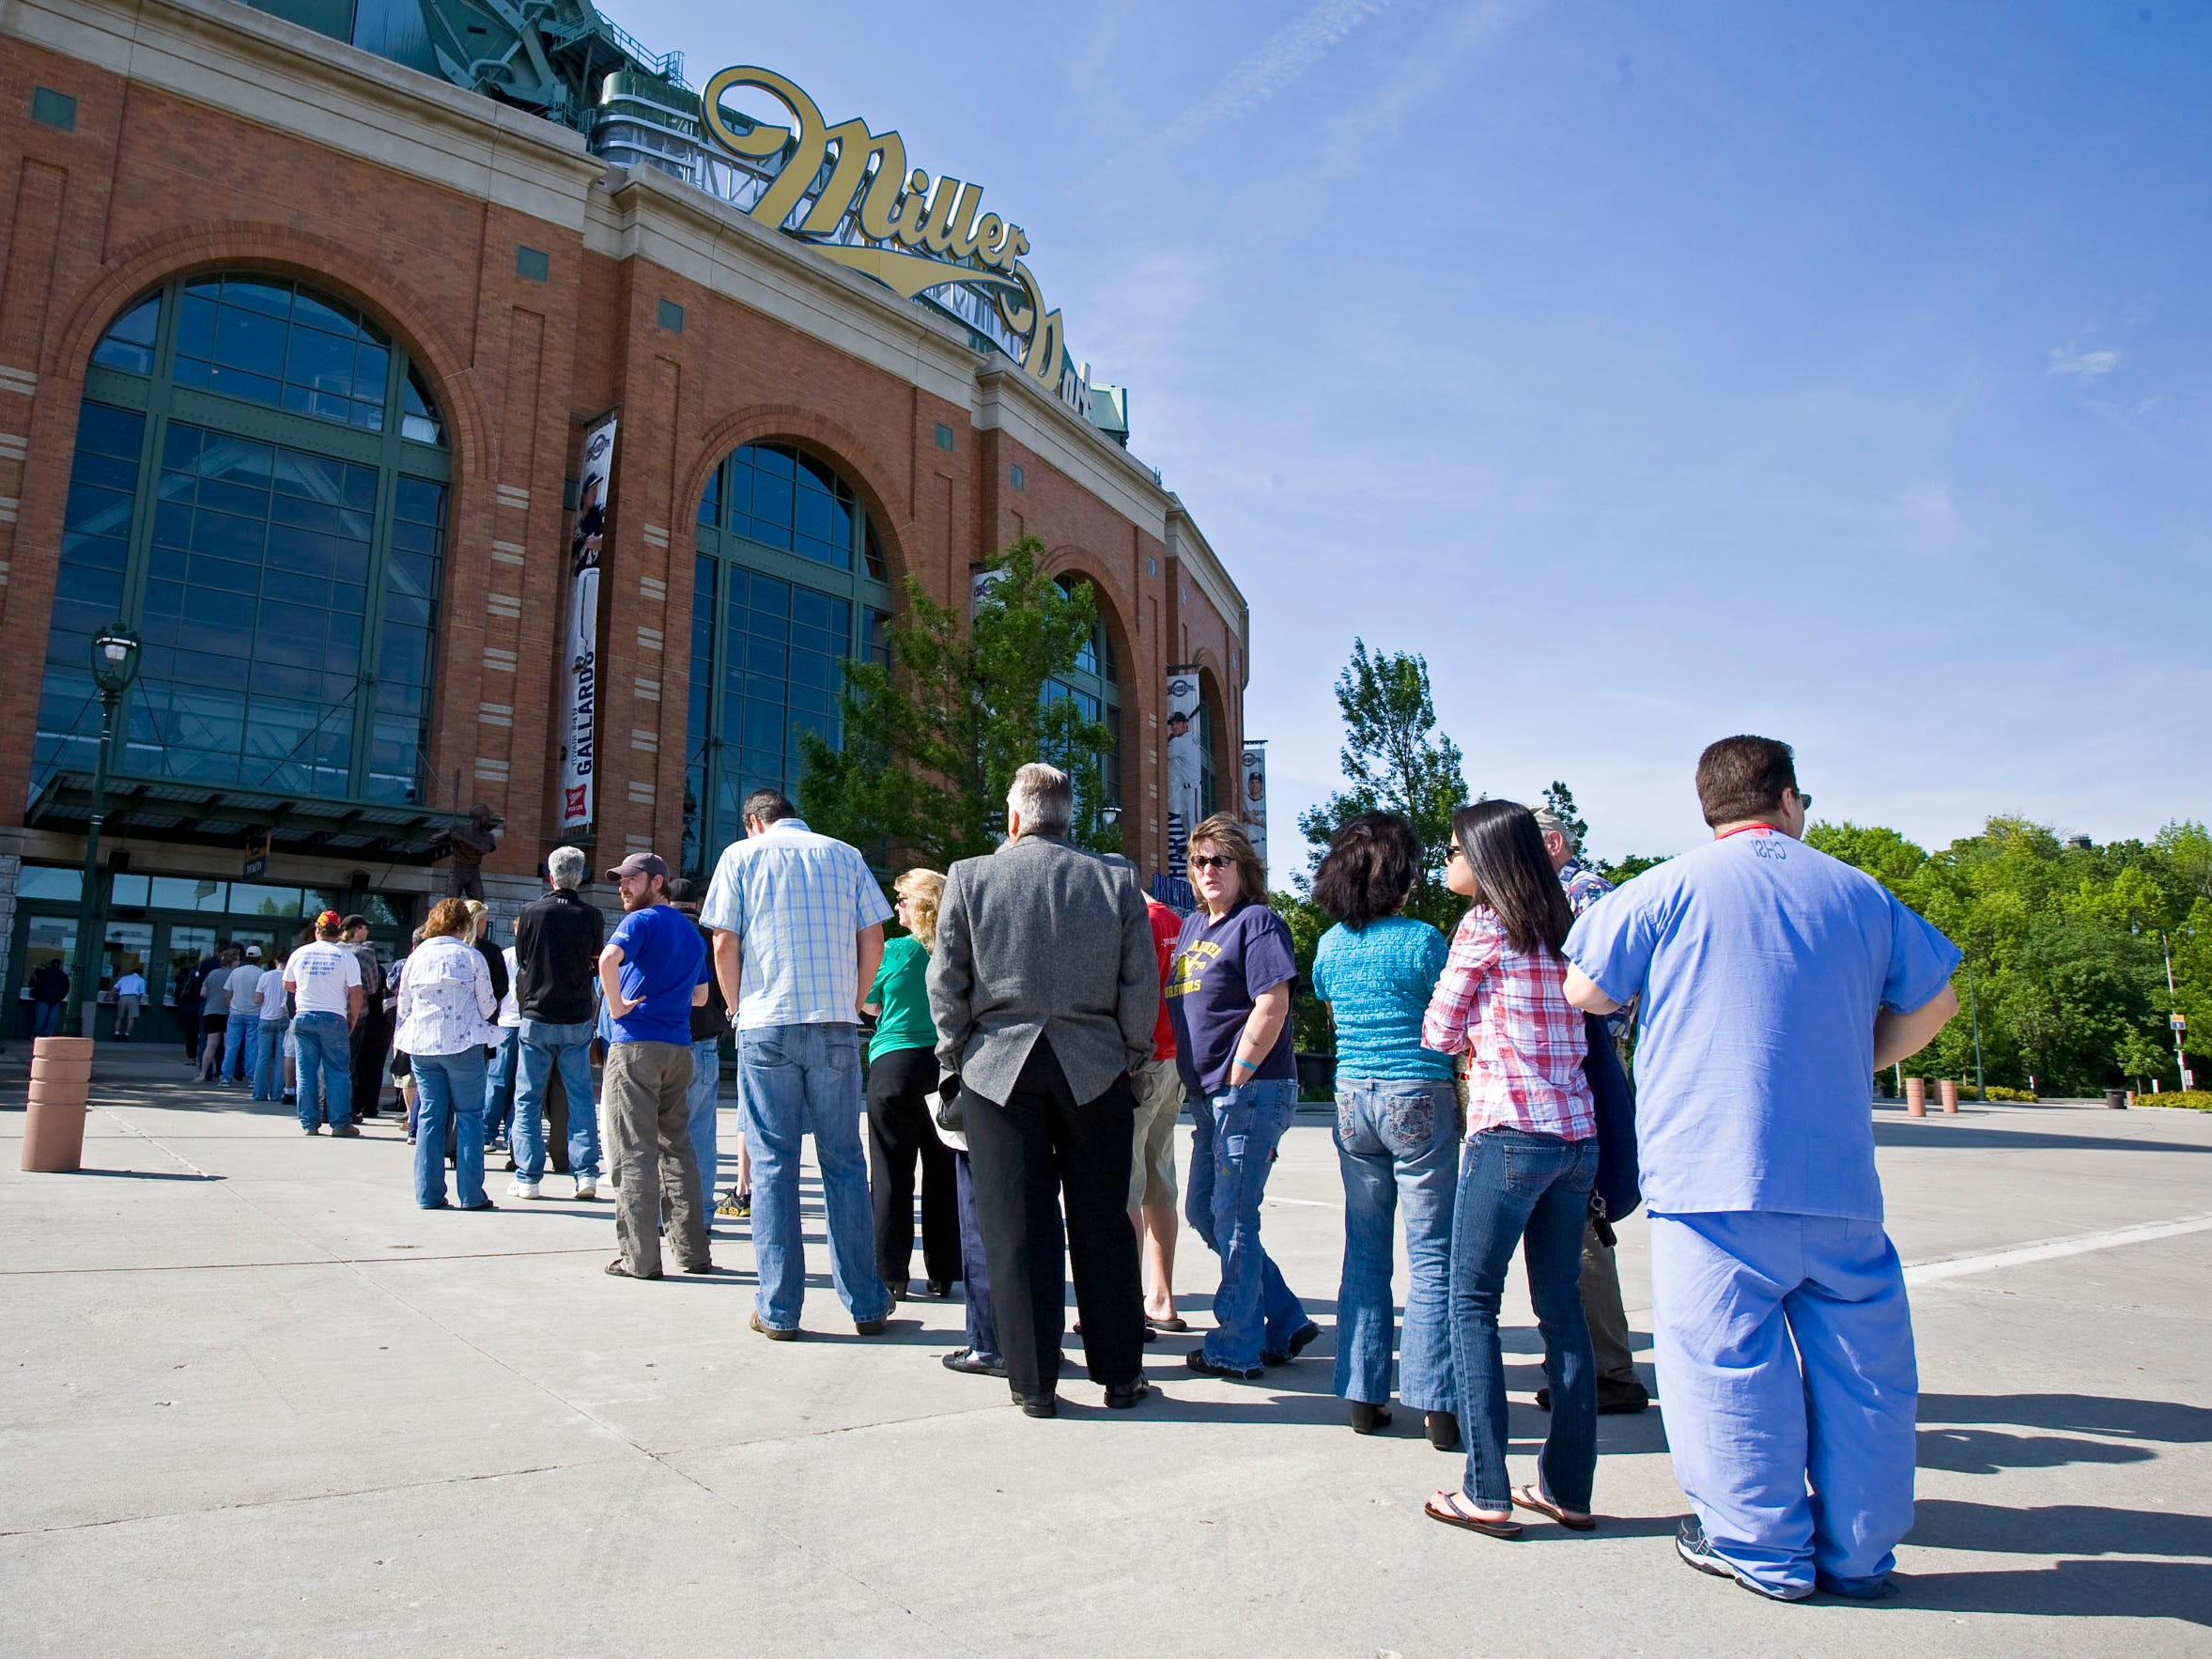 Discount tickets went on sale at Miller Park  June 1, 2009. A lined formed to get a deal to see the first-place Brewers.